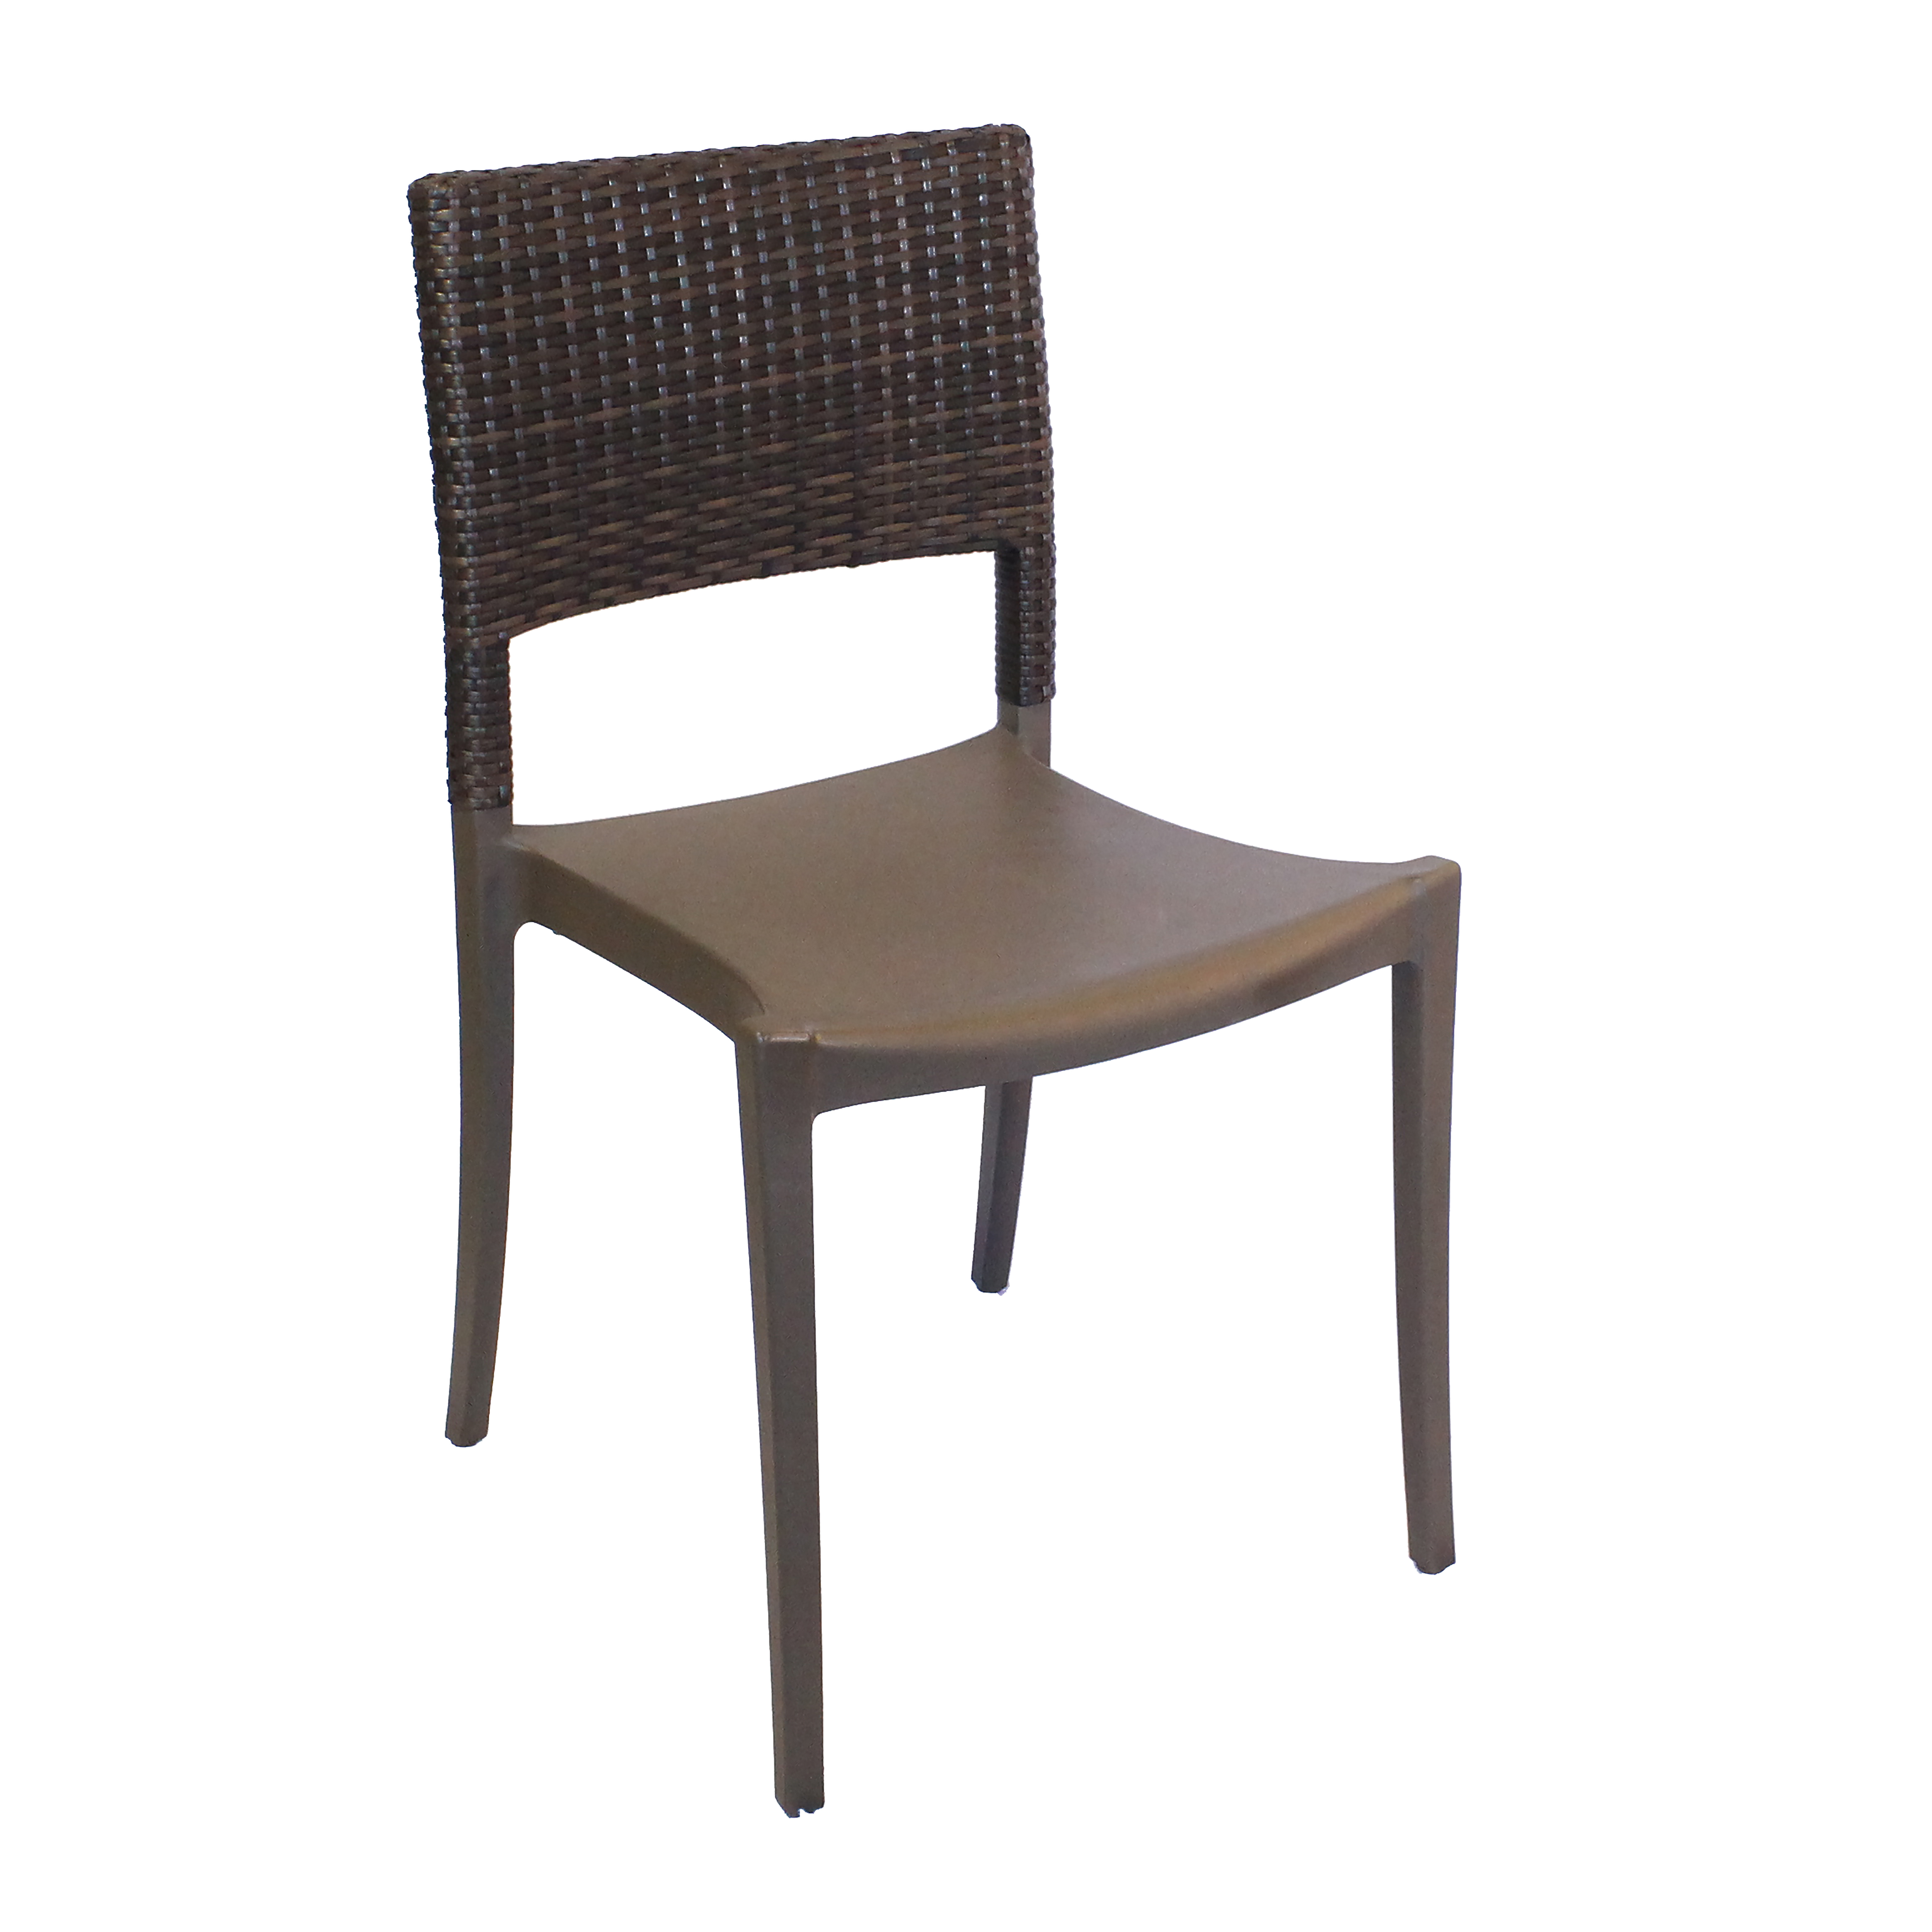 Grosfillex US925037 chair, side, stacking, outdoor